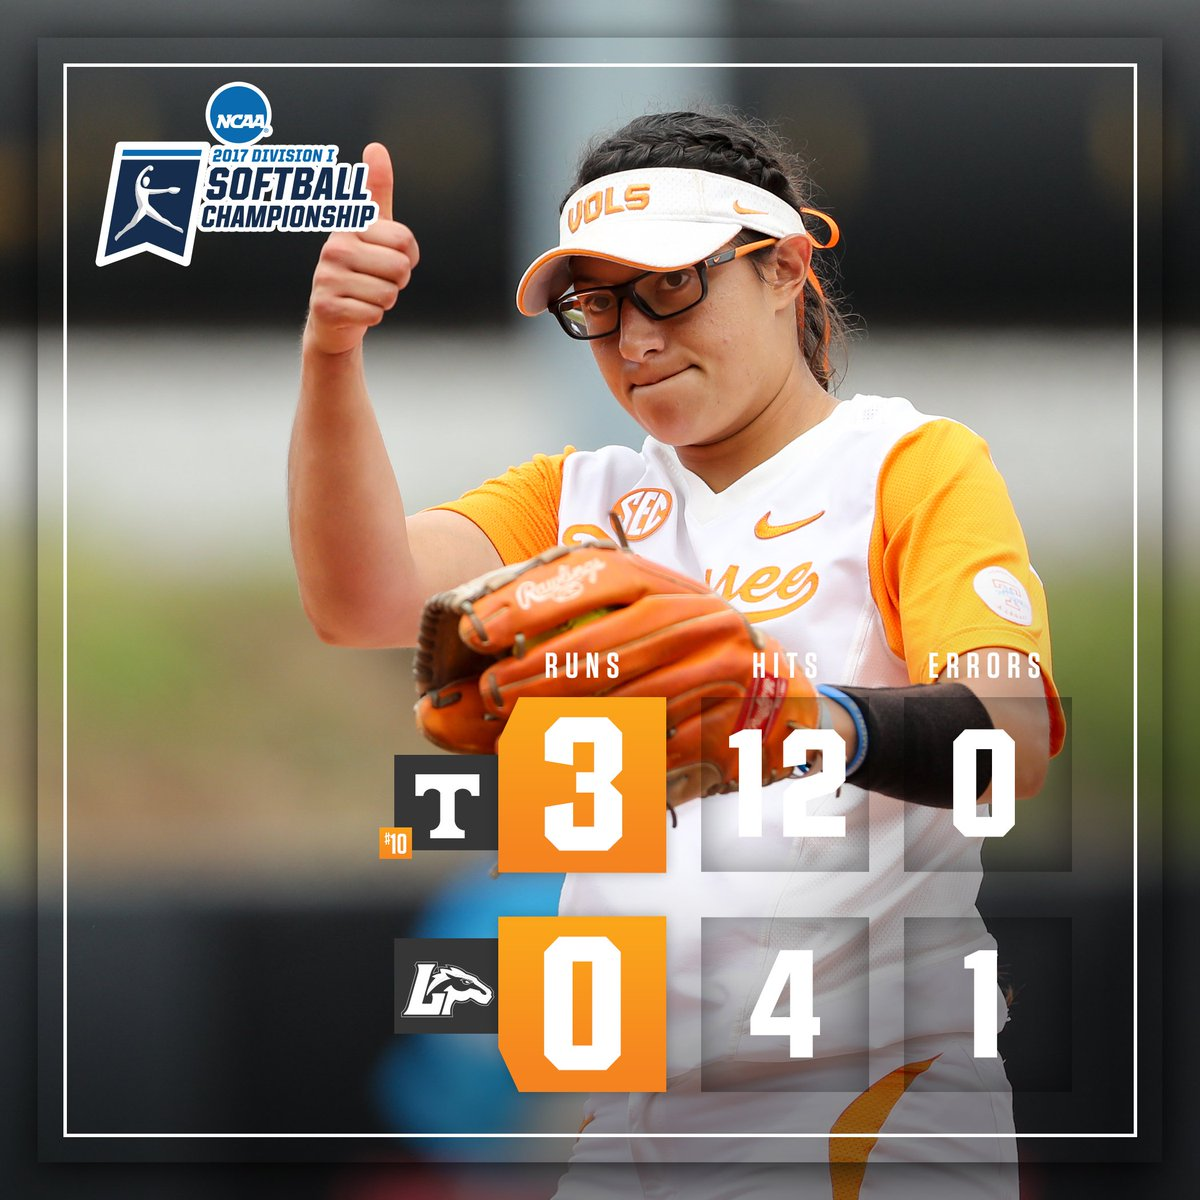 Tennessee is heading to the @NCAAsoftball Super Regionals for the fifth time in six years! #VolsWin https://t.co/5EMmDfplhr